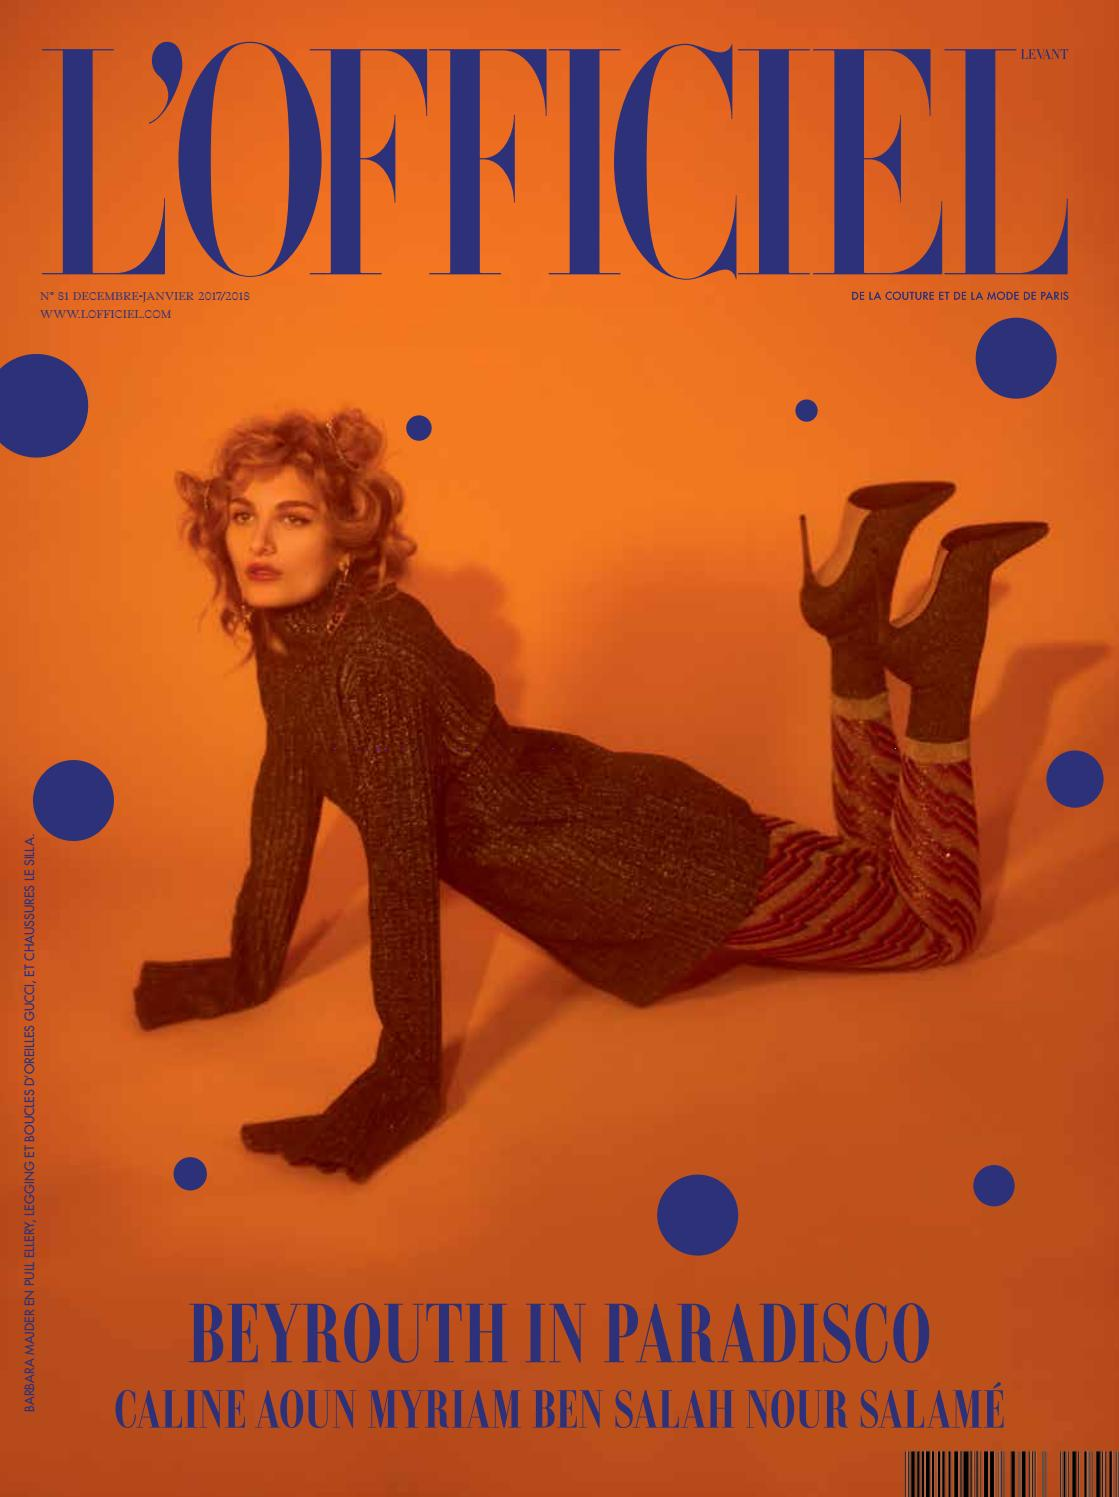 L Officiel-Levant, December January Issue 81 by L Officiel Levant - issuu f6338b22c336